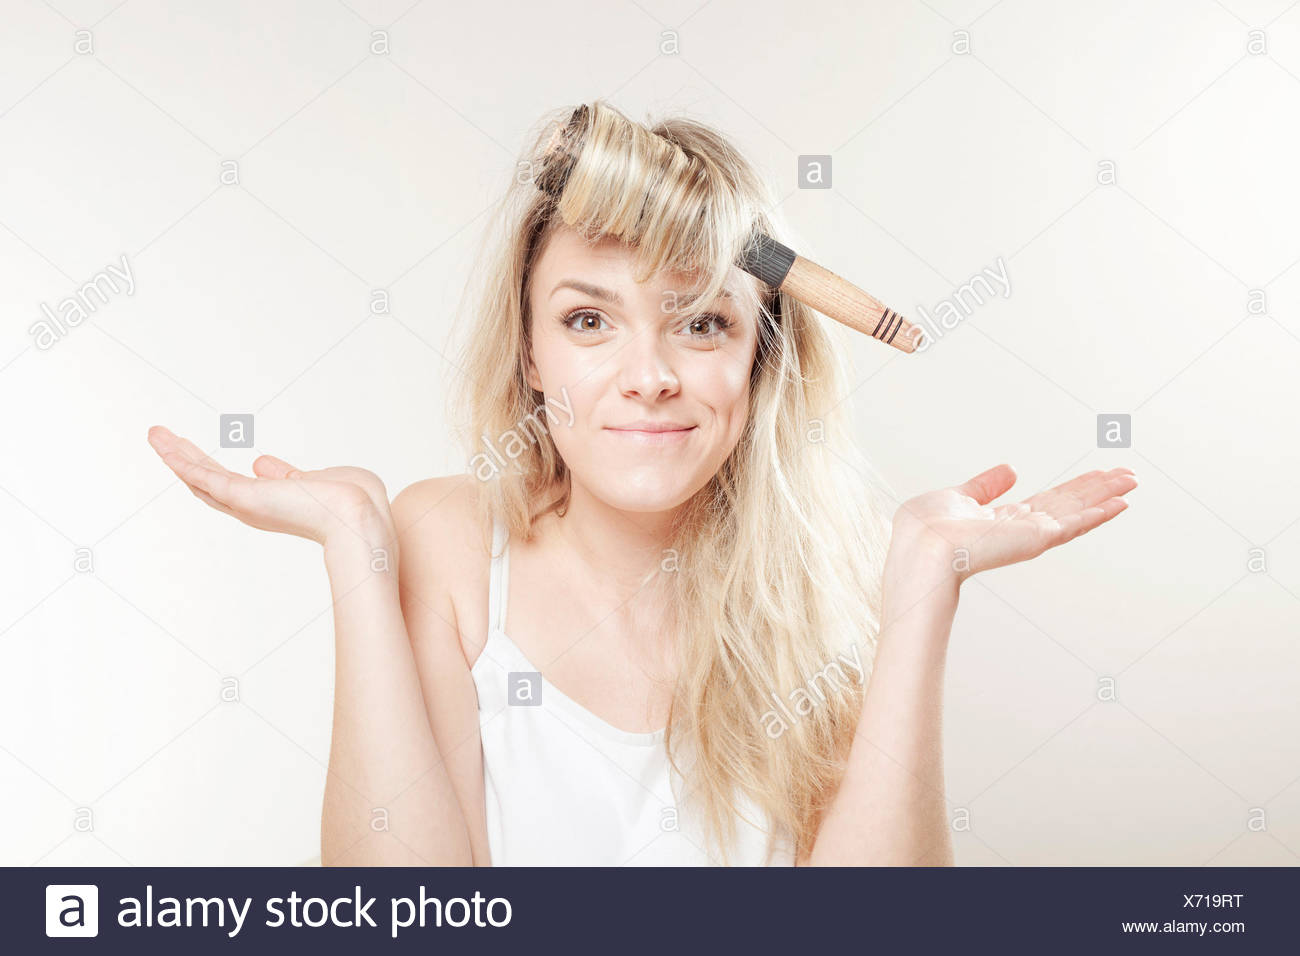 Young woman with hairbrush fooling around - Stock Image